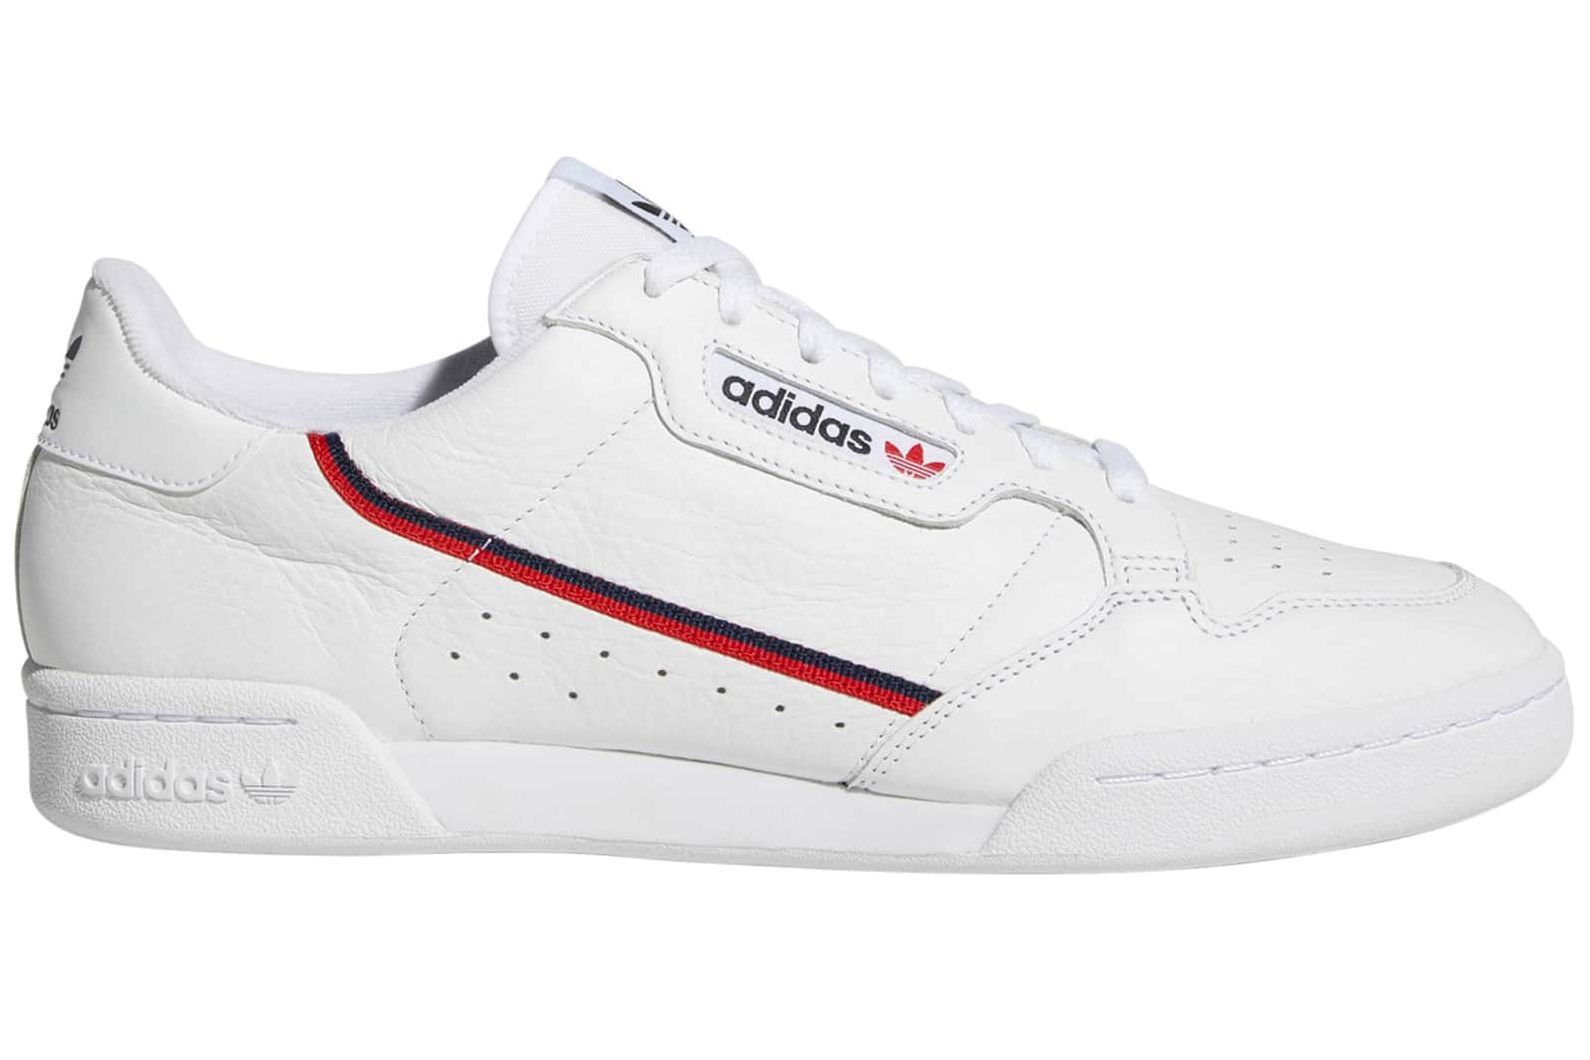 new products 60d5c f23d6 16 Best White Sneakers for Men in 2019 - 16 White Shoes to Wear Right Now